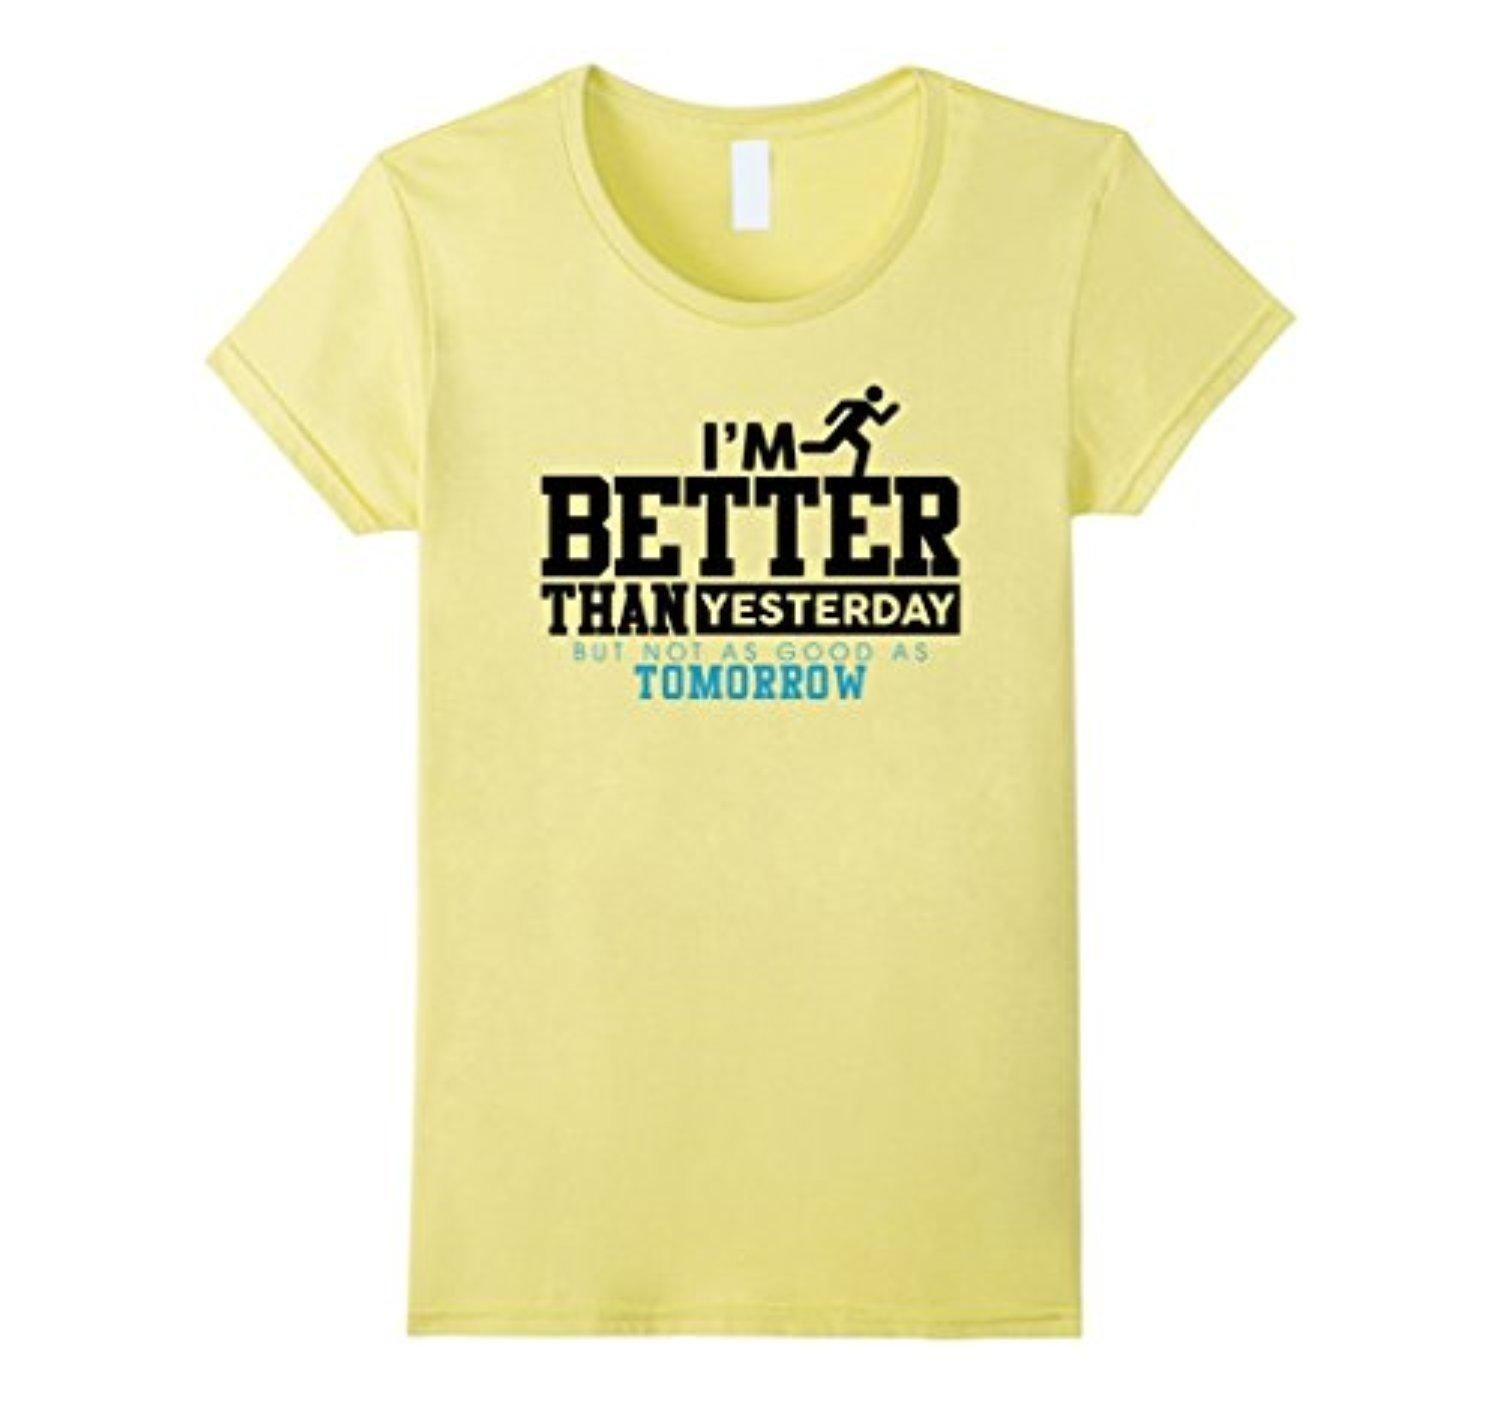 Women's I'm Better Than Yesterday But Not As Good As Tomorrow Shirt Large Lemon - Brought to you by Avarsha.com